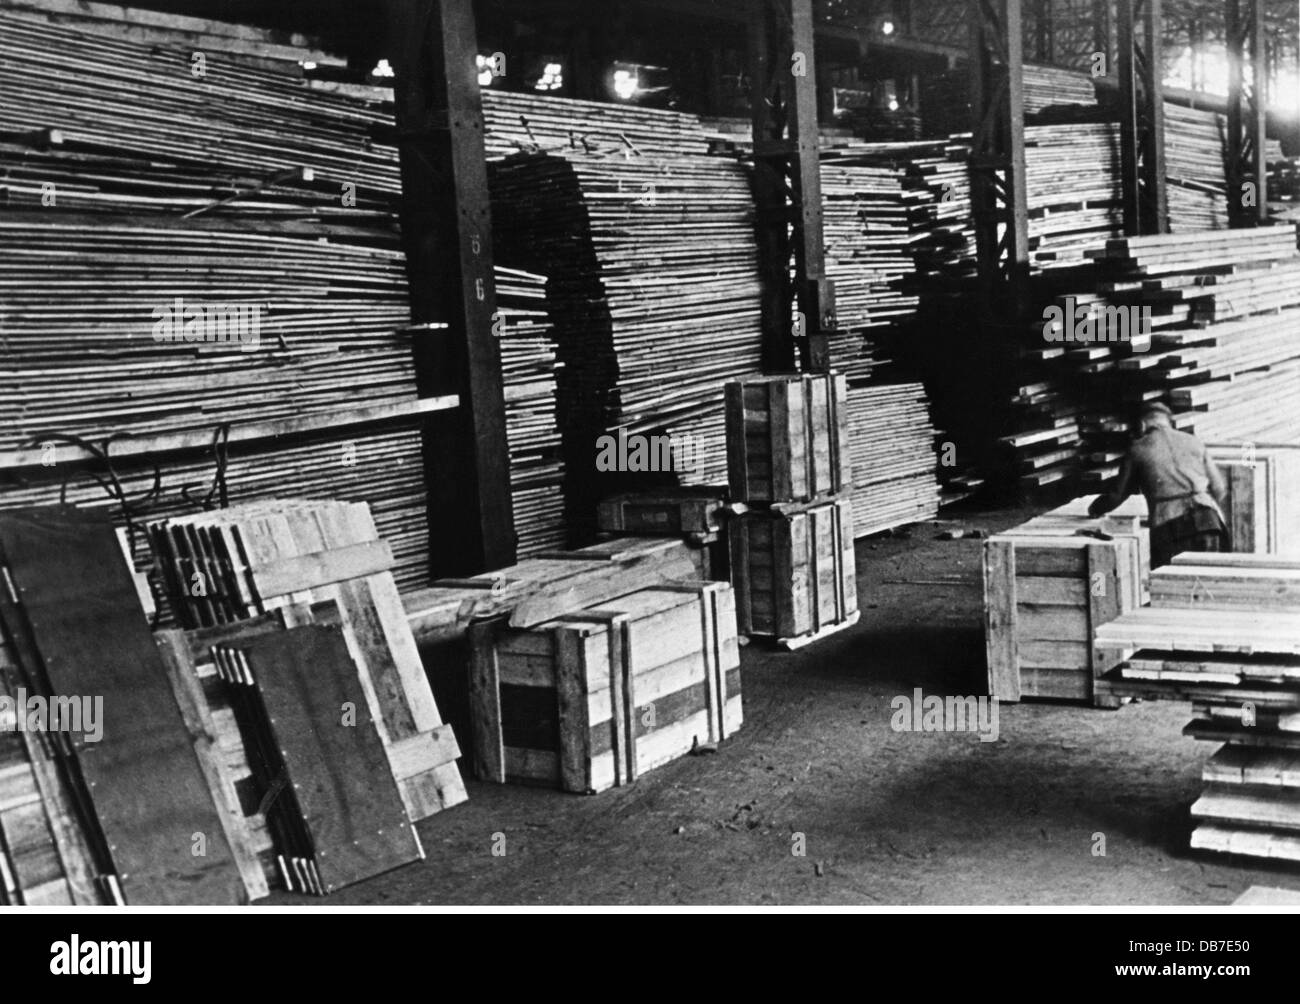 post war period, reconstruction, warehouse with wooden planks and wooden boxes, 1945 - 1949, Additional-Rights-Clearences - Stock Image